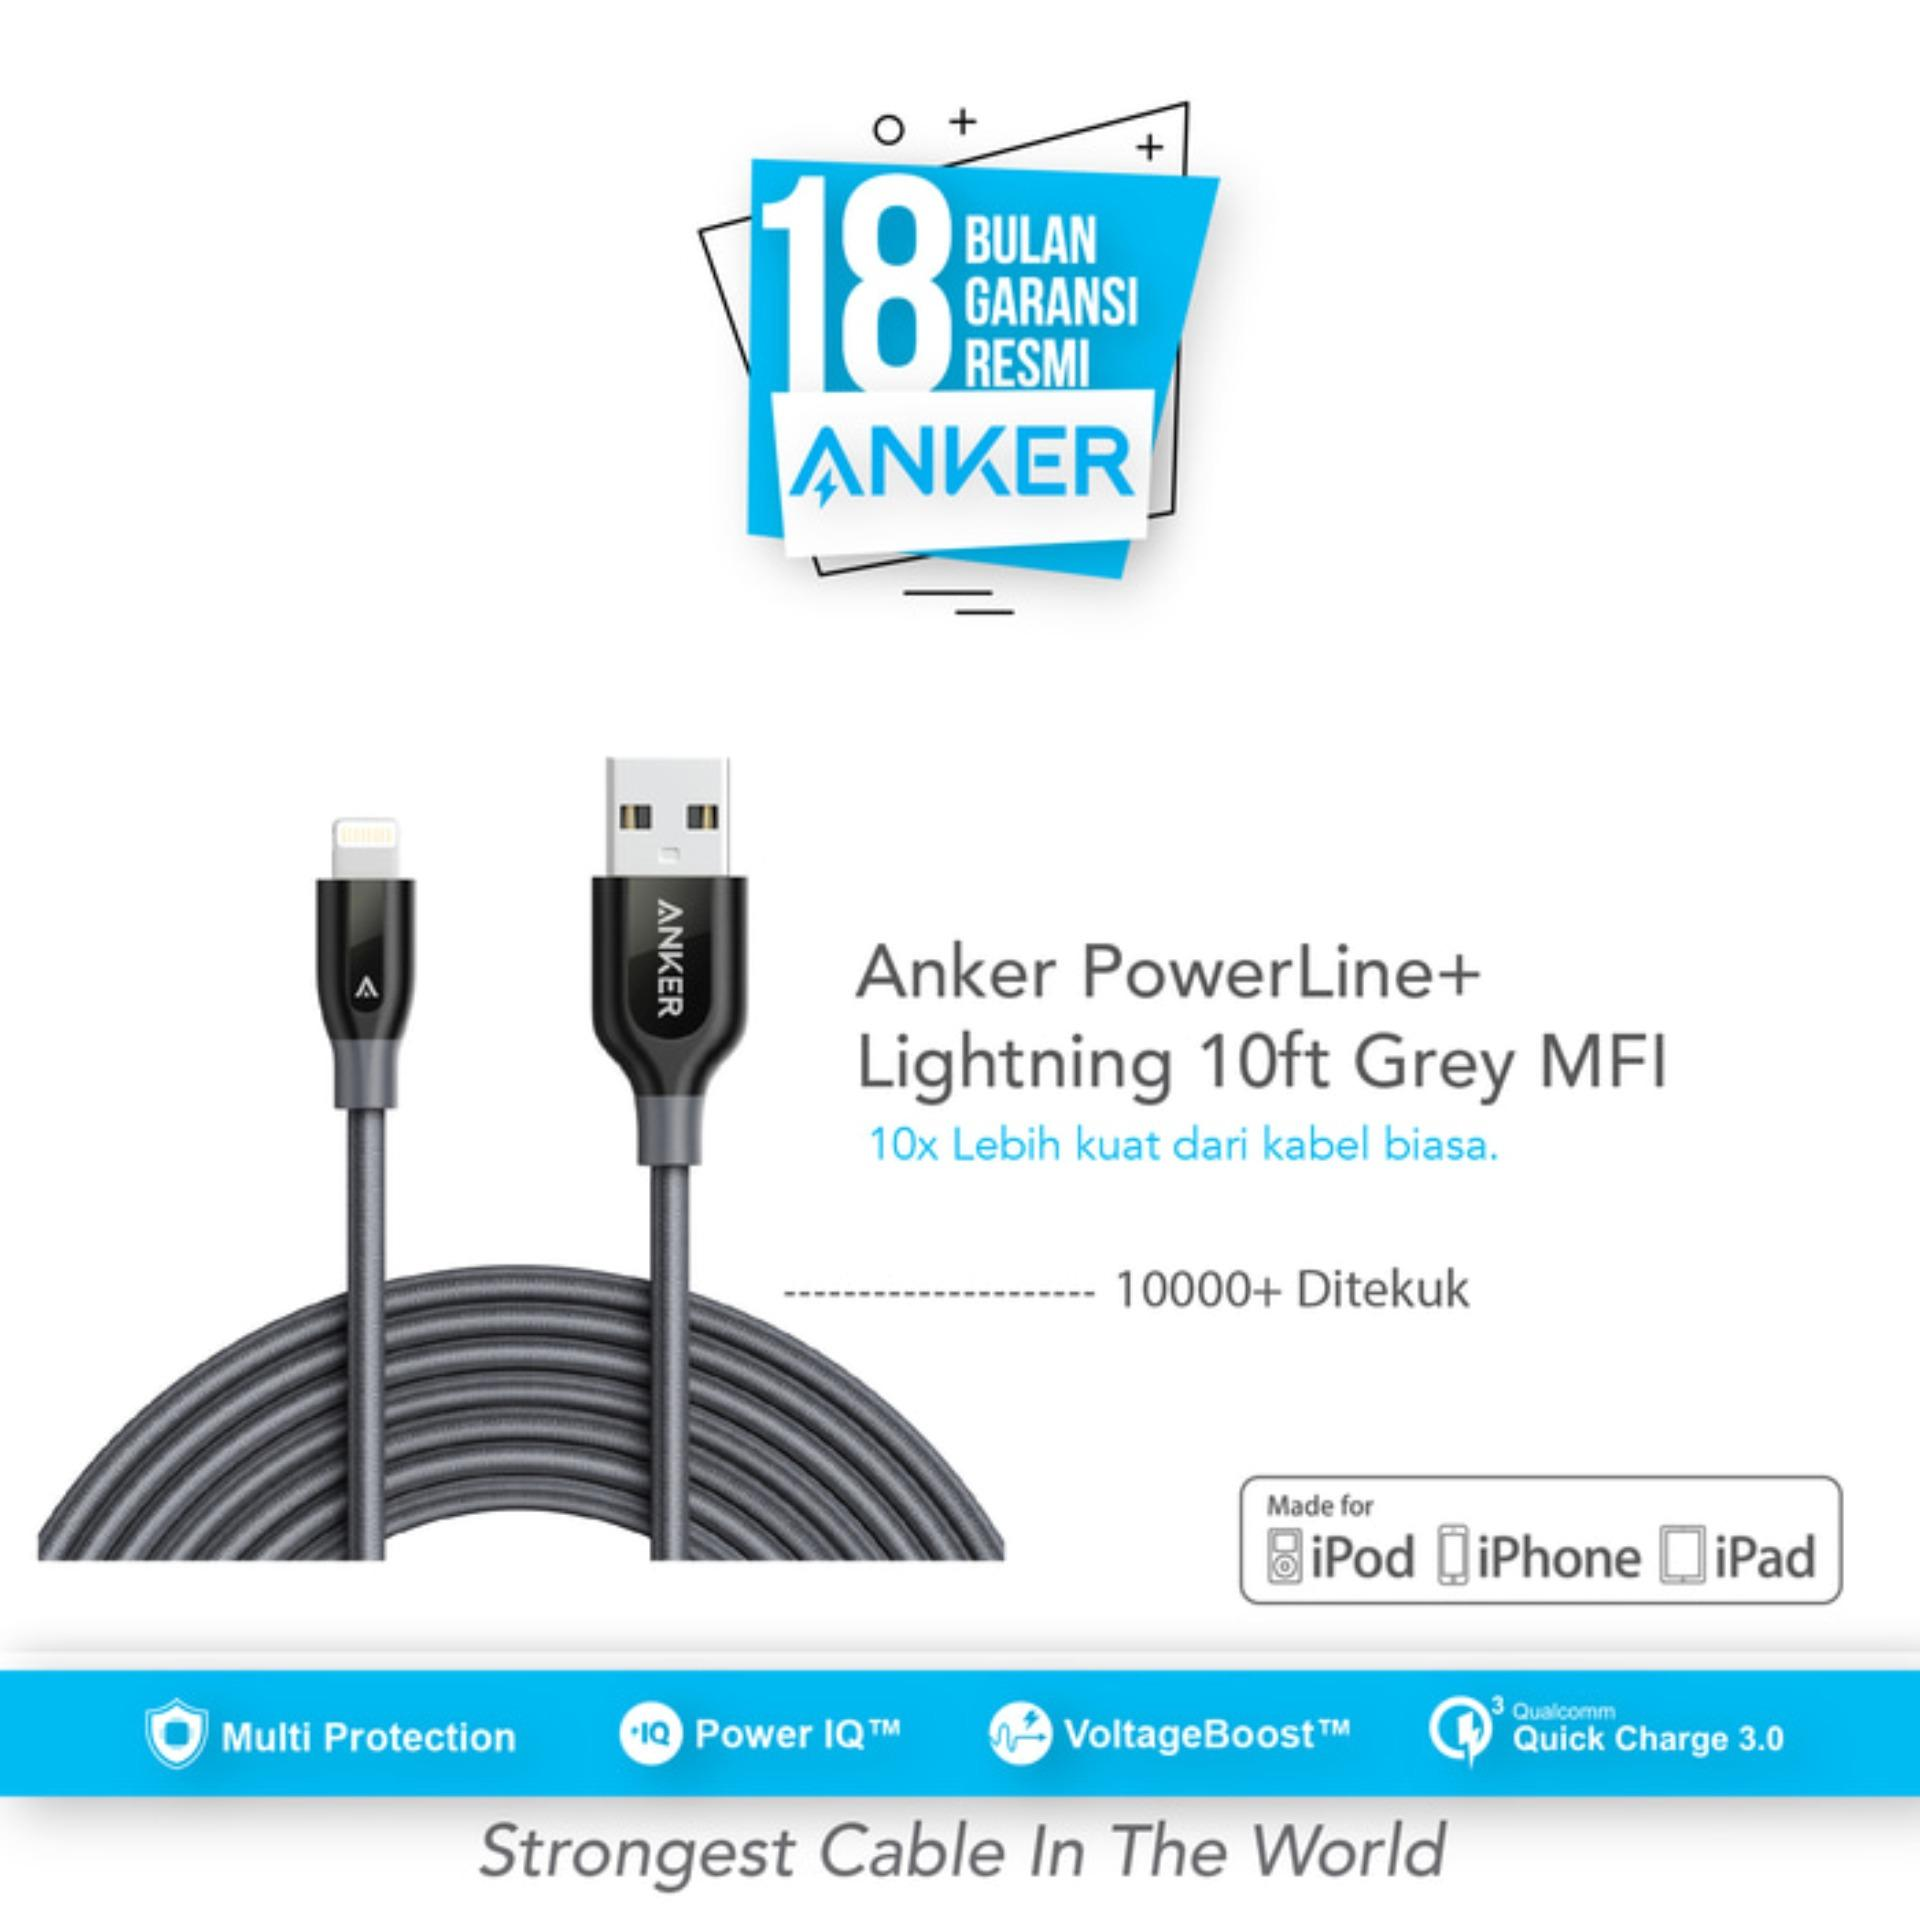 Harga Anker Powerline Lightning Mfi Certified 10Ft 3M Gray Anker